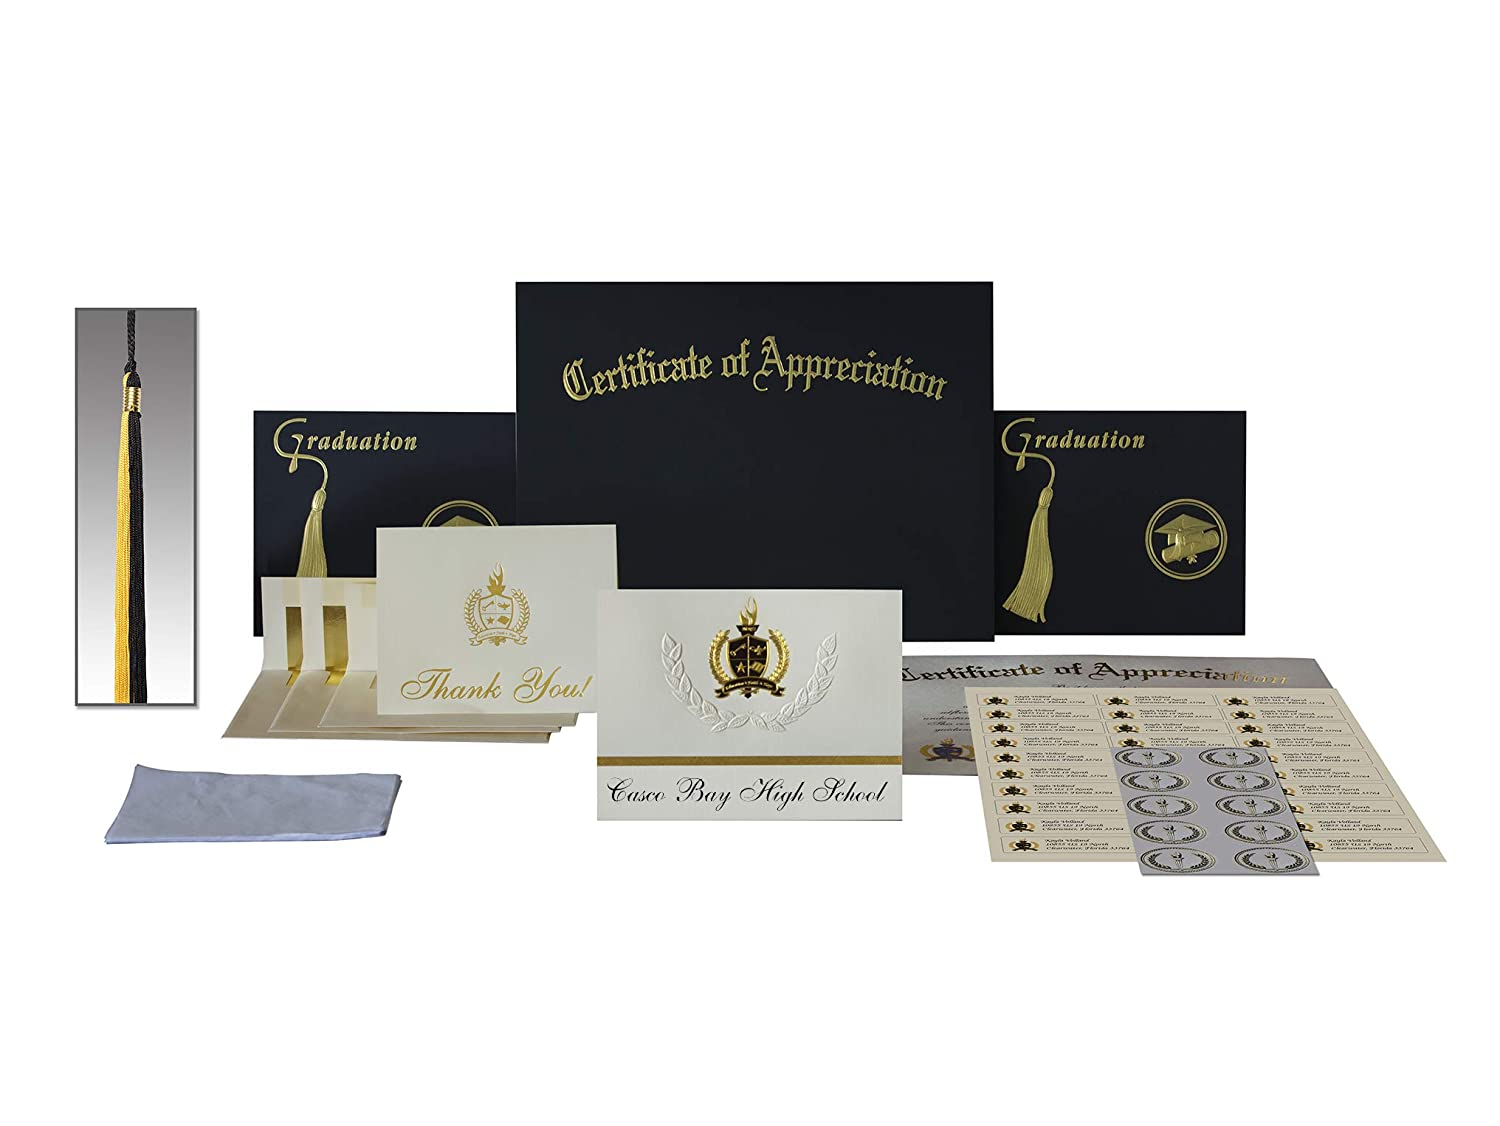 Amazon.com : Signature Announcements Casco Bay High School (Portland, ME) Graduation Announcements, Presidential style, Elite package of 25 with Gold ...